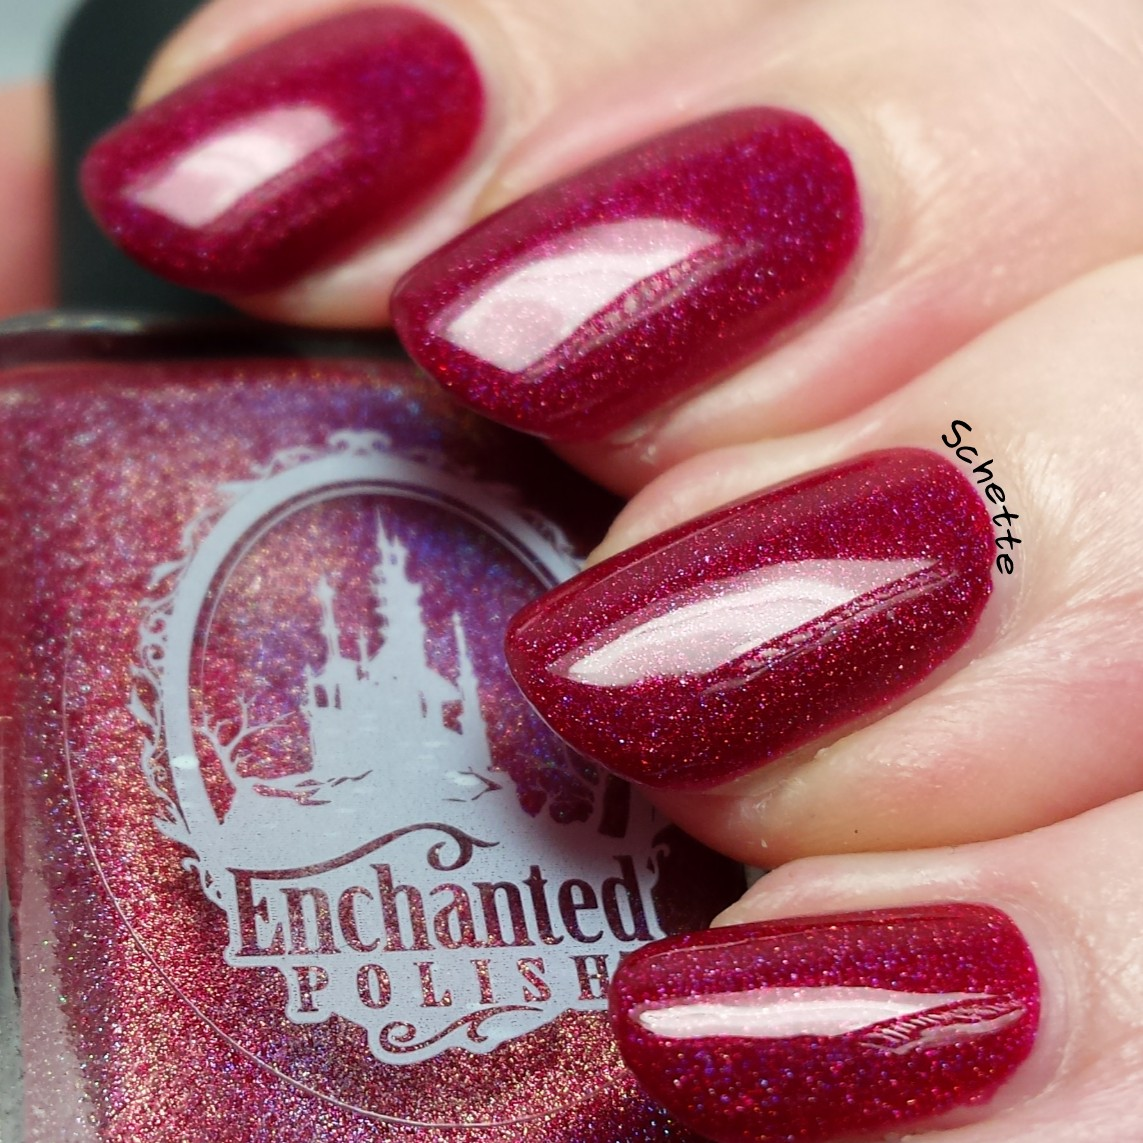 Enchanted Polish : Pandore